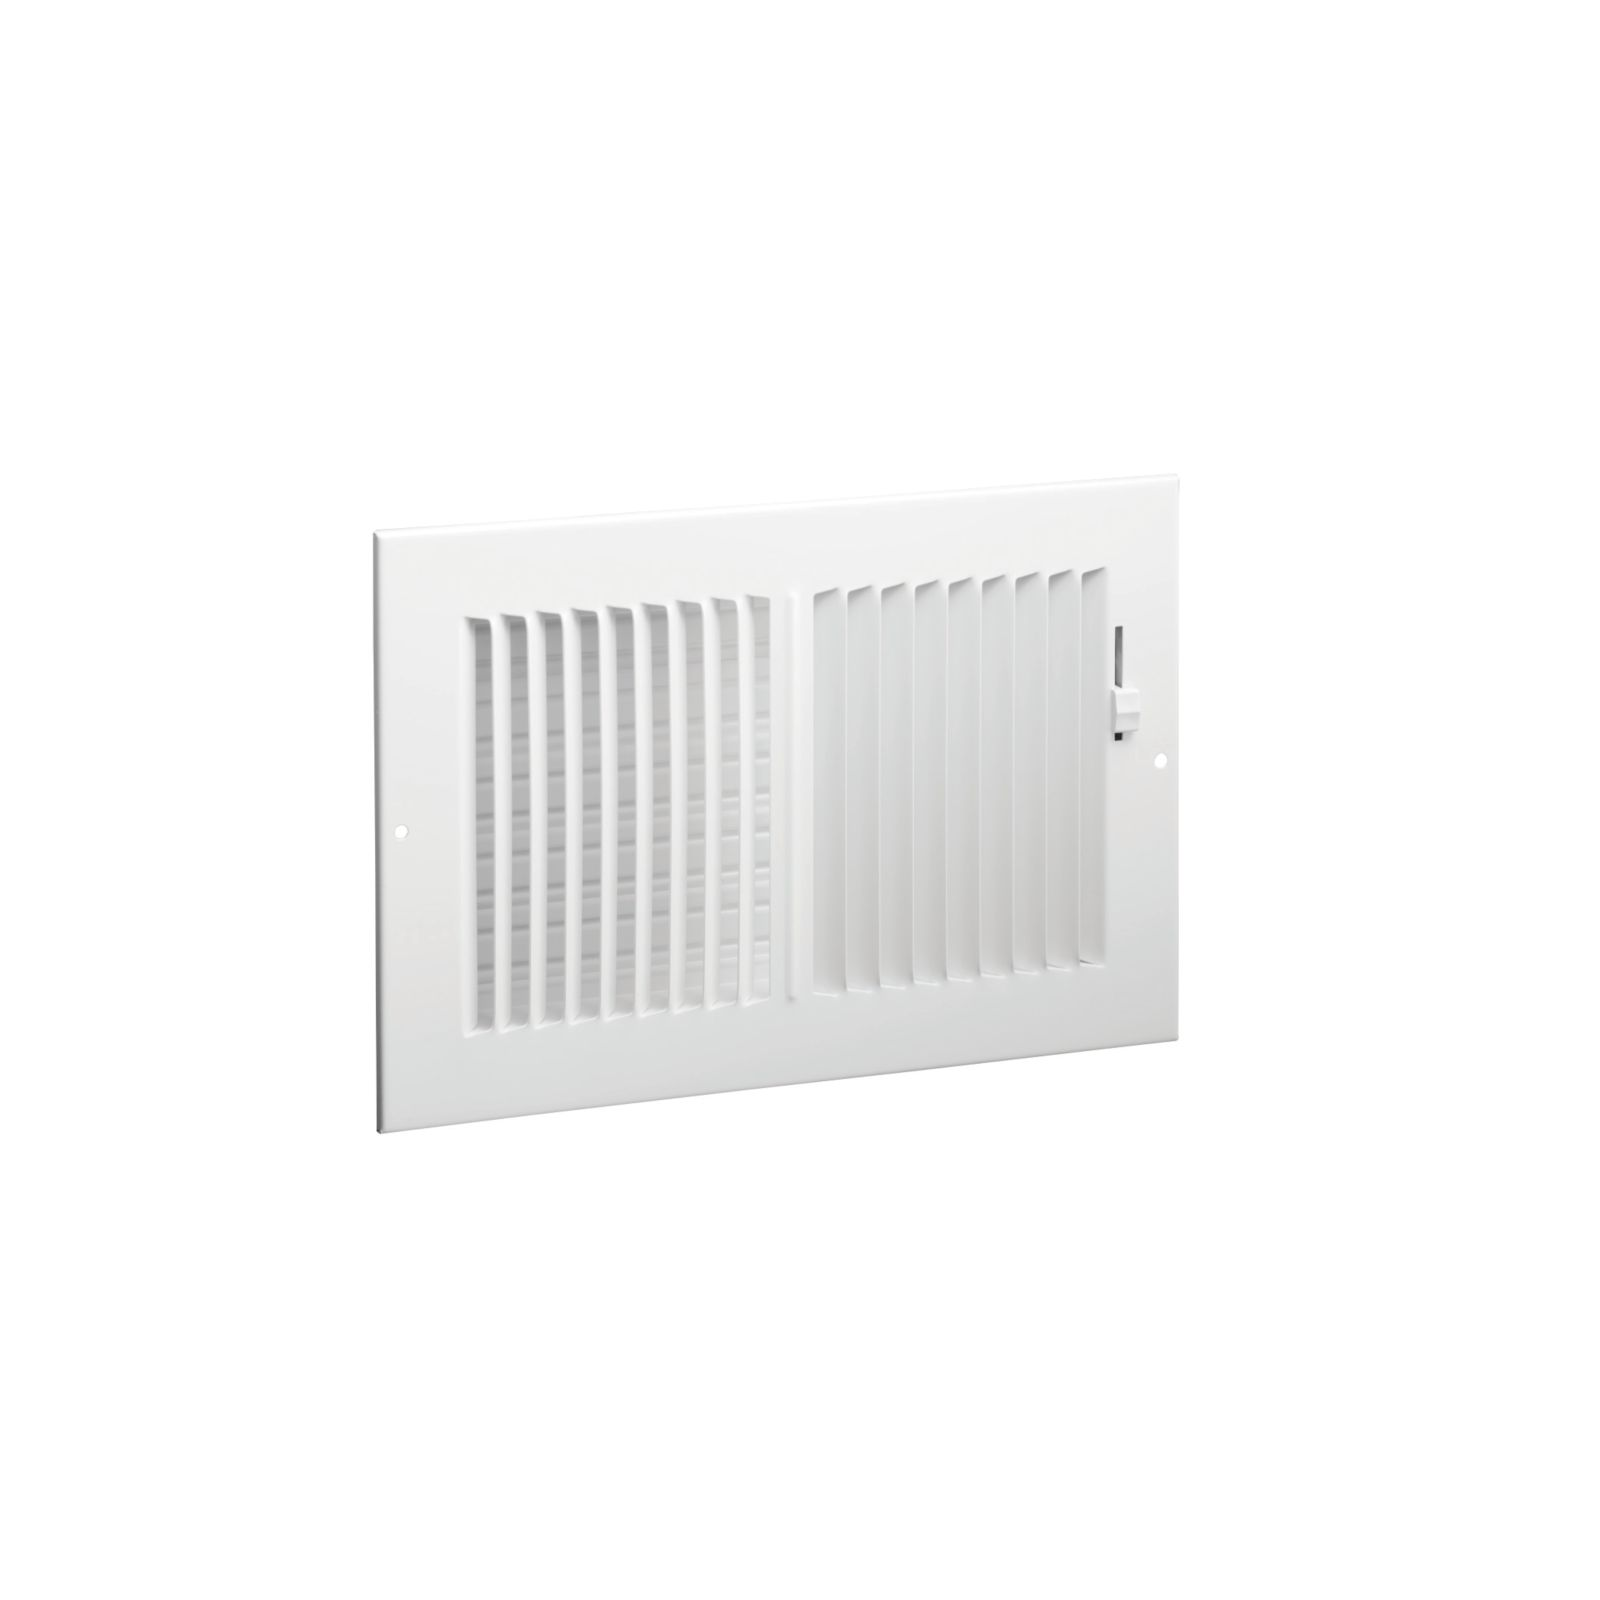 "Hart & Cooley 703914 - #682M Steel 2-Way Sidewall/Ceiling Register, Multi-Shutter Damper with Metal Handle, White, 14"" X 6"""